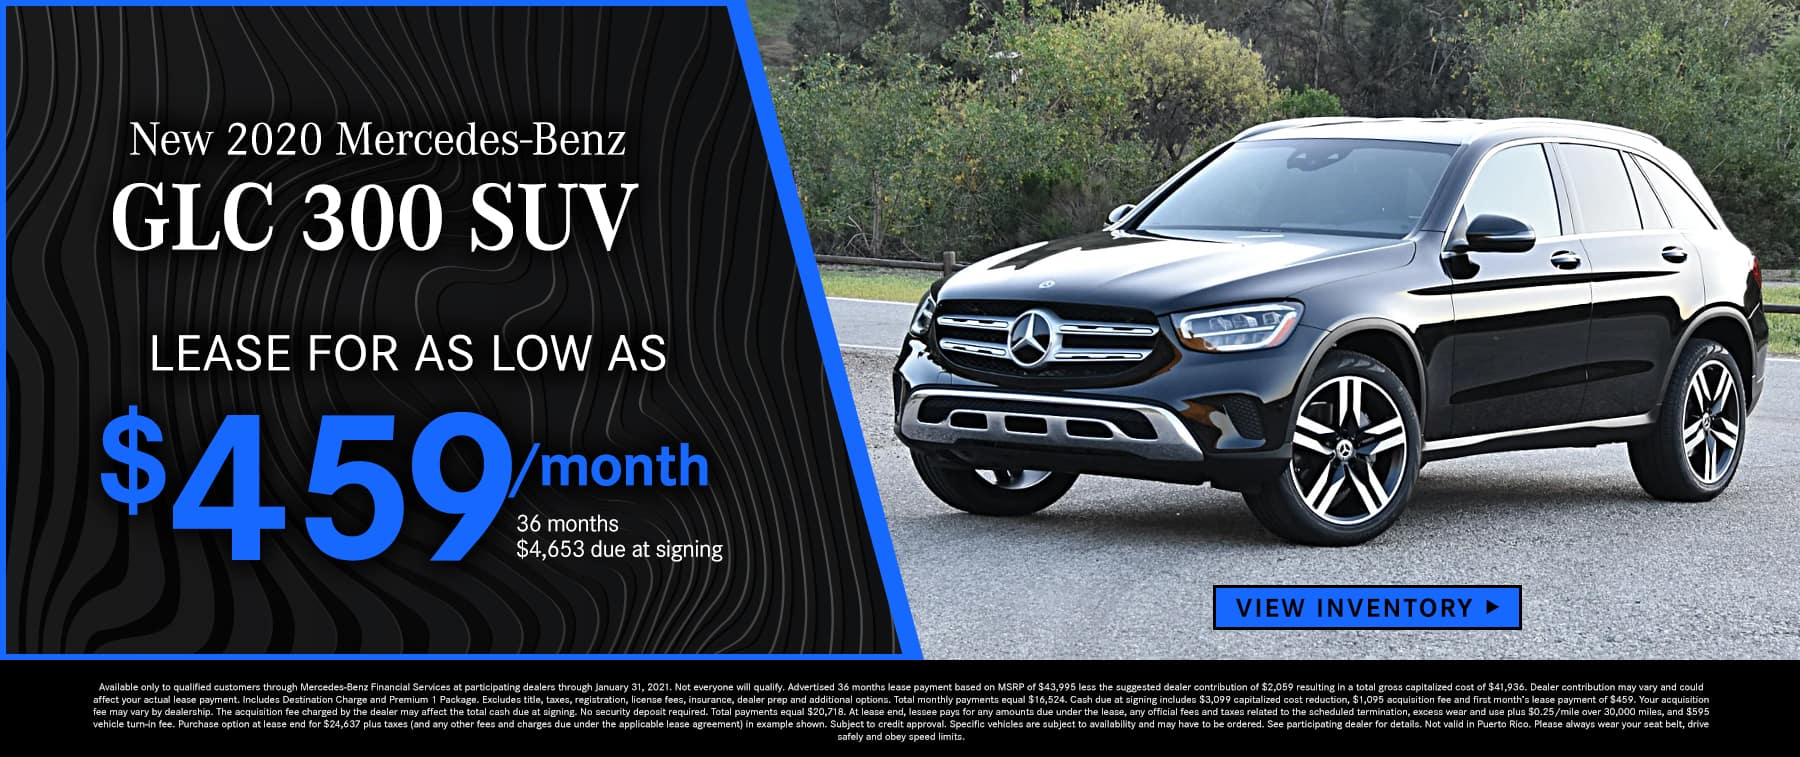 2020 GLC 300 SUV Lease as low as $459 Per Month 36 Months/10k Miles $4,653 Due at signing